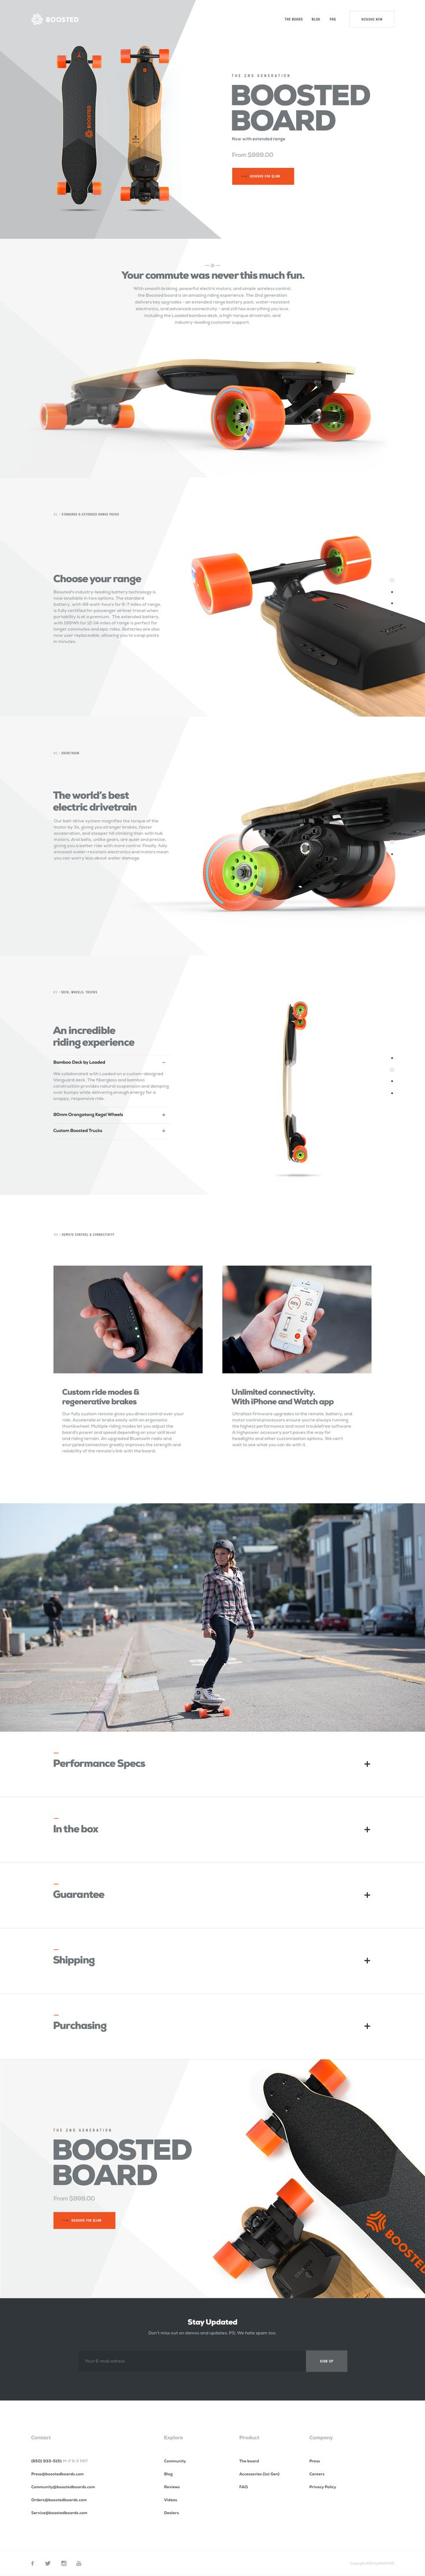 Product page                                                                                                                                                                                 More